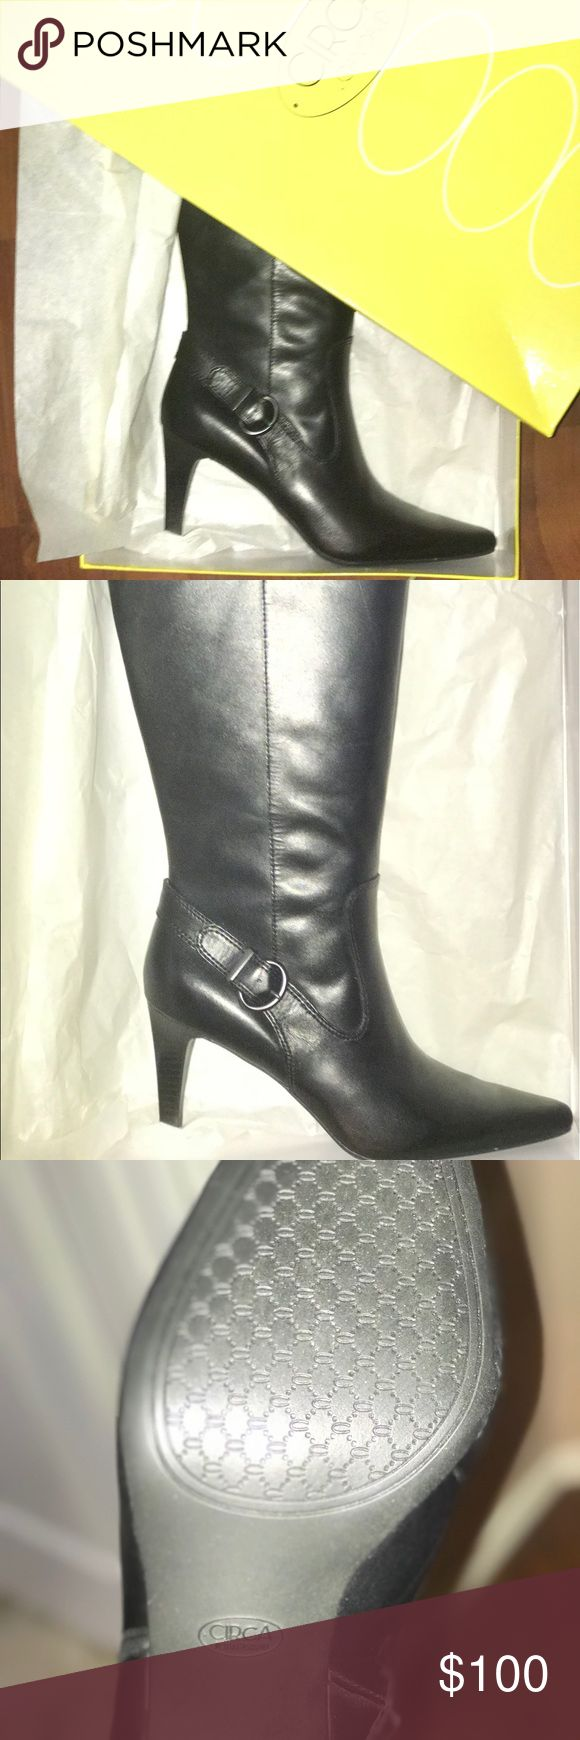 Brand New Leather Joan&David Brand New Boots ! Women's Brand New Joan&David Boots , Good quality leather ! NEVER BEEN WORN Joan & David Shoes Heels